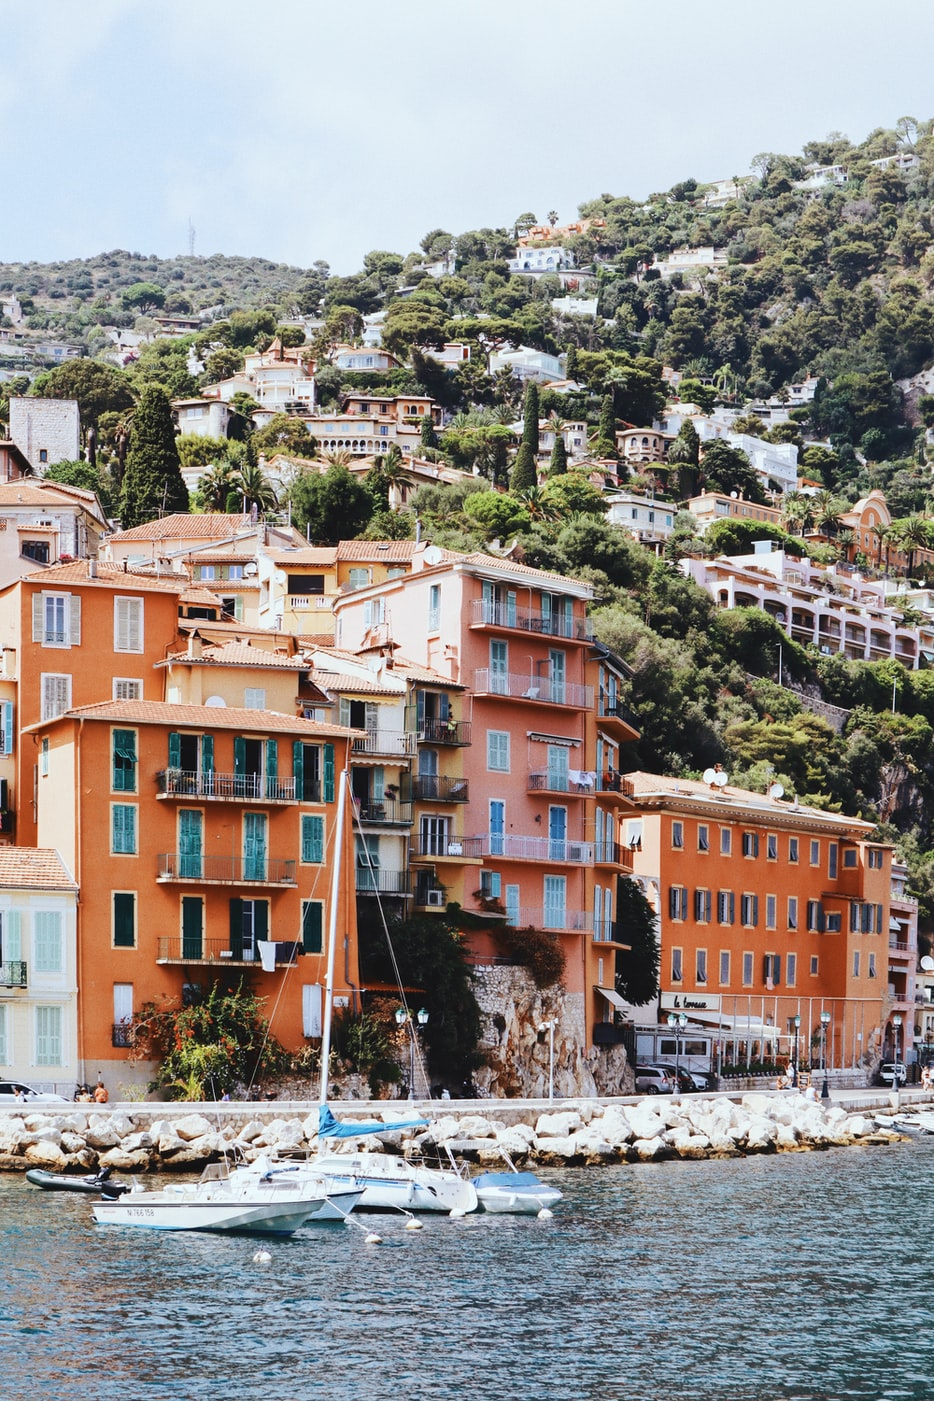 buildings on the coast of Villefranche-sur-Mer, France